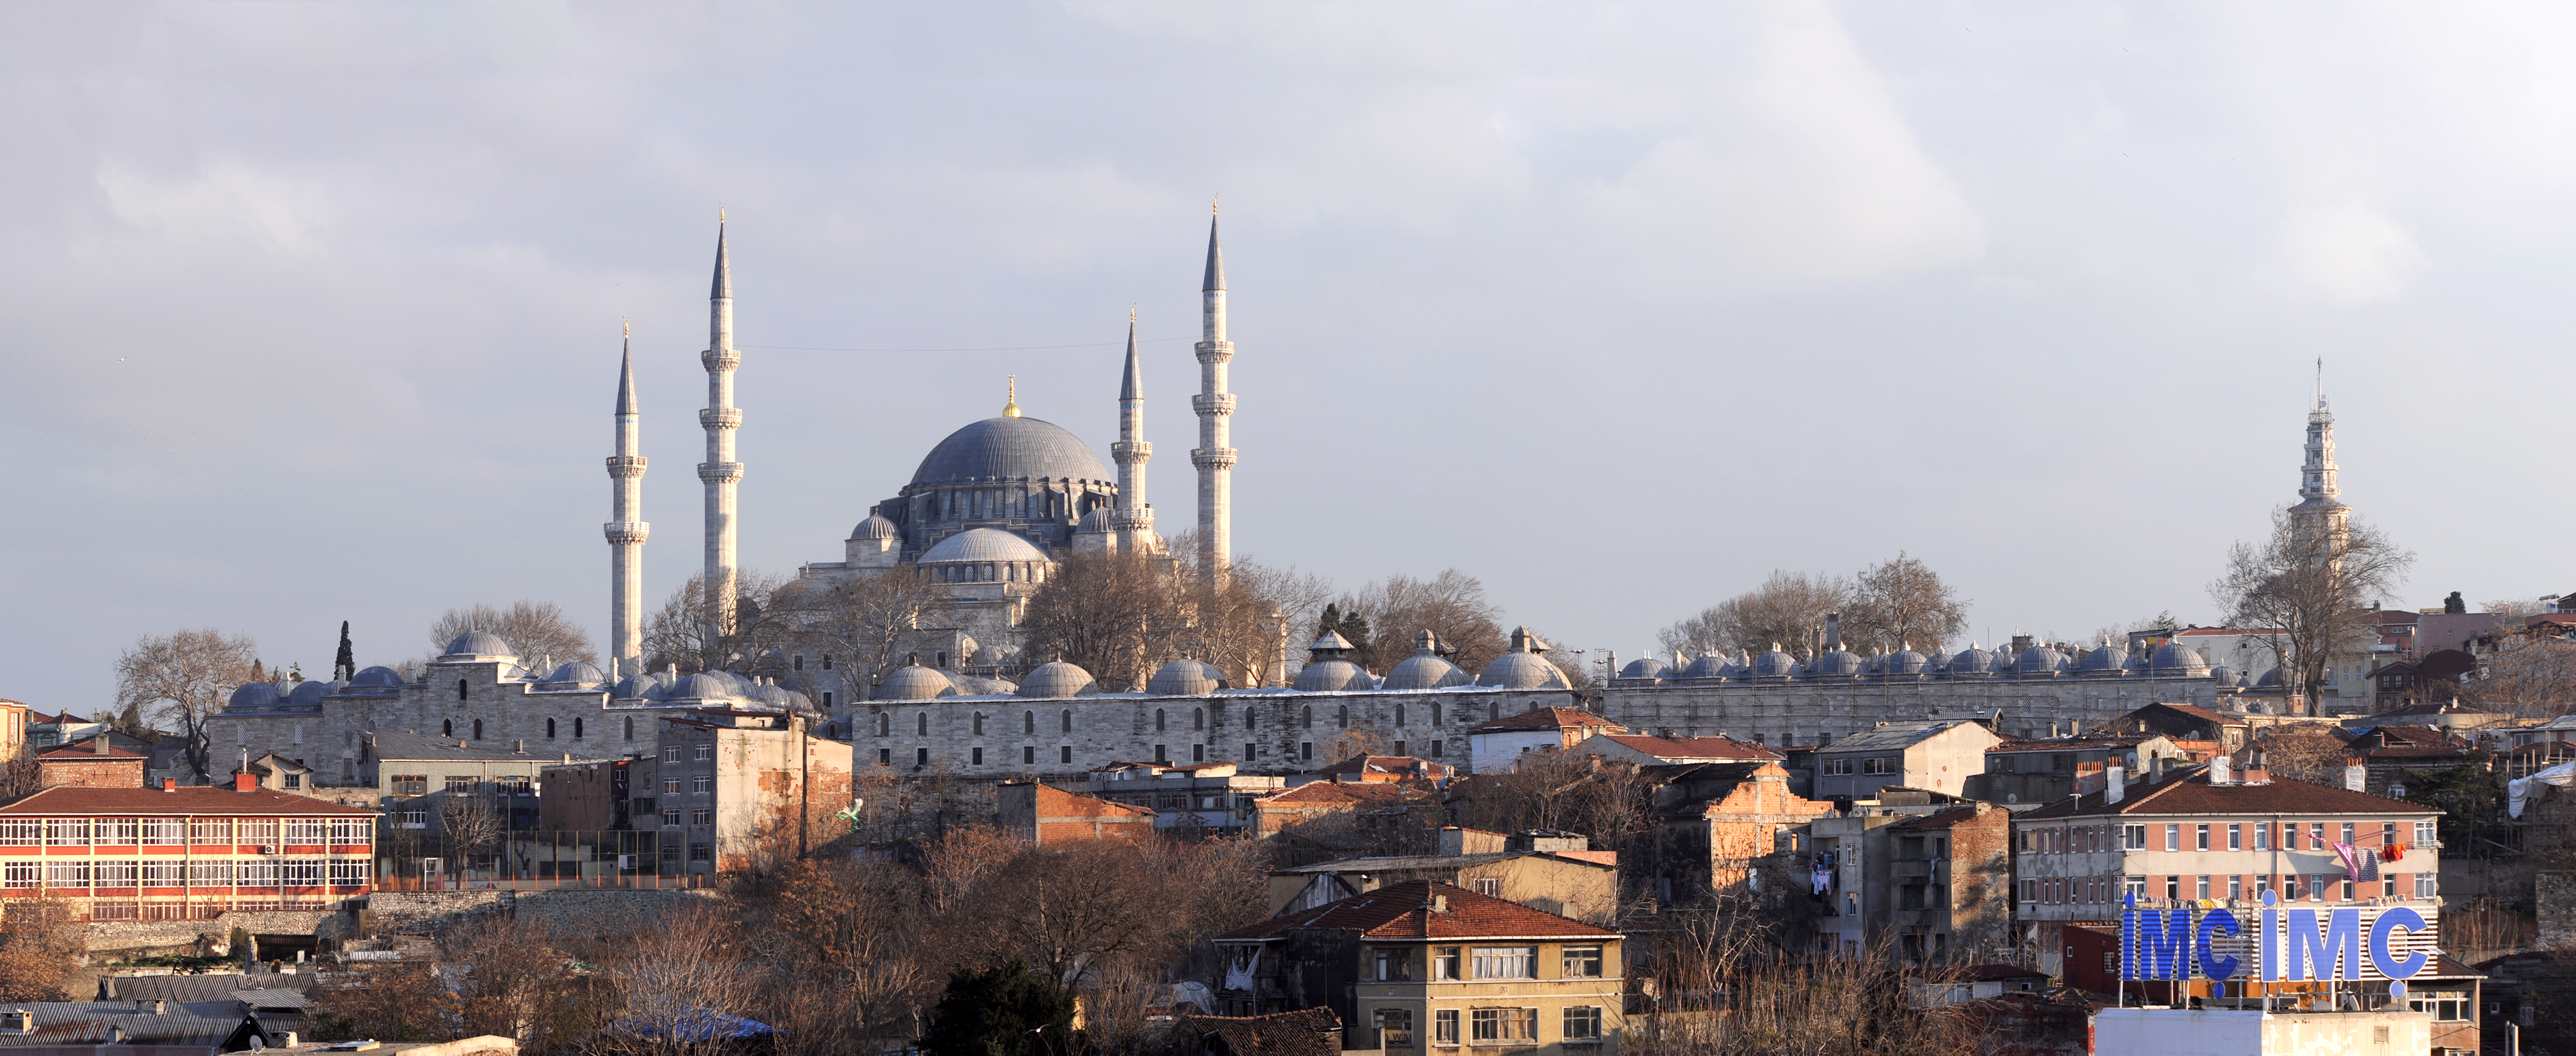 Istanbul Turkey  City pictures : Description 20111225 Suleymaniye Mosque Istanbul Turkey Panoramic